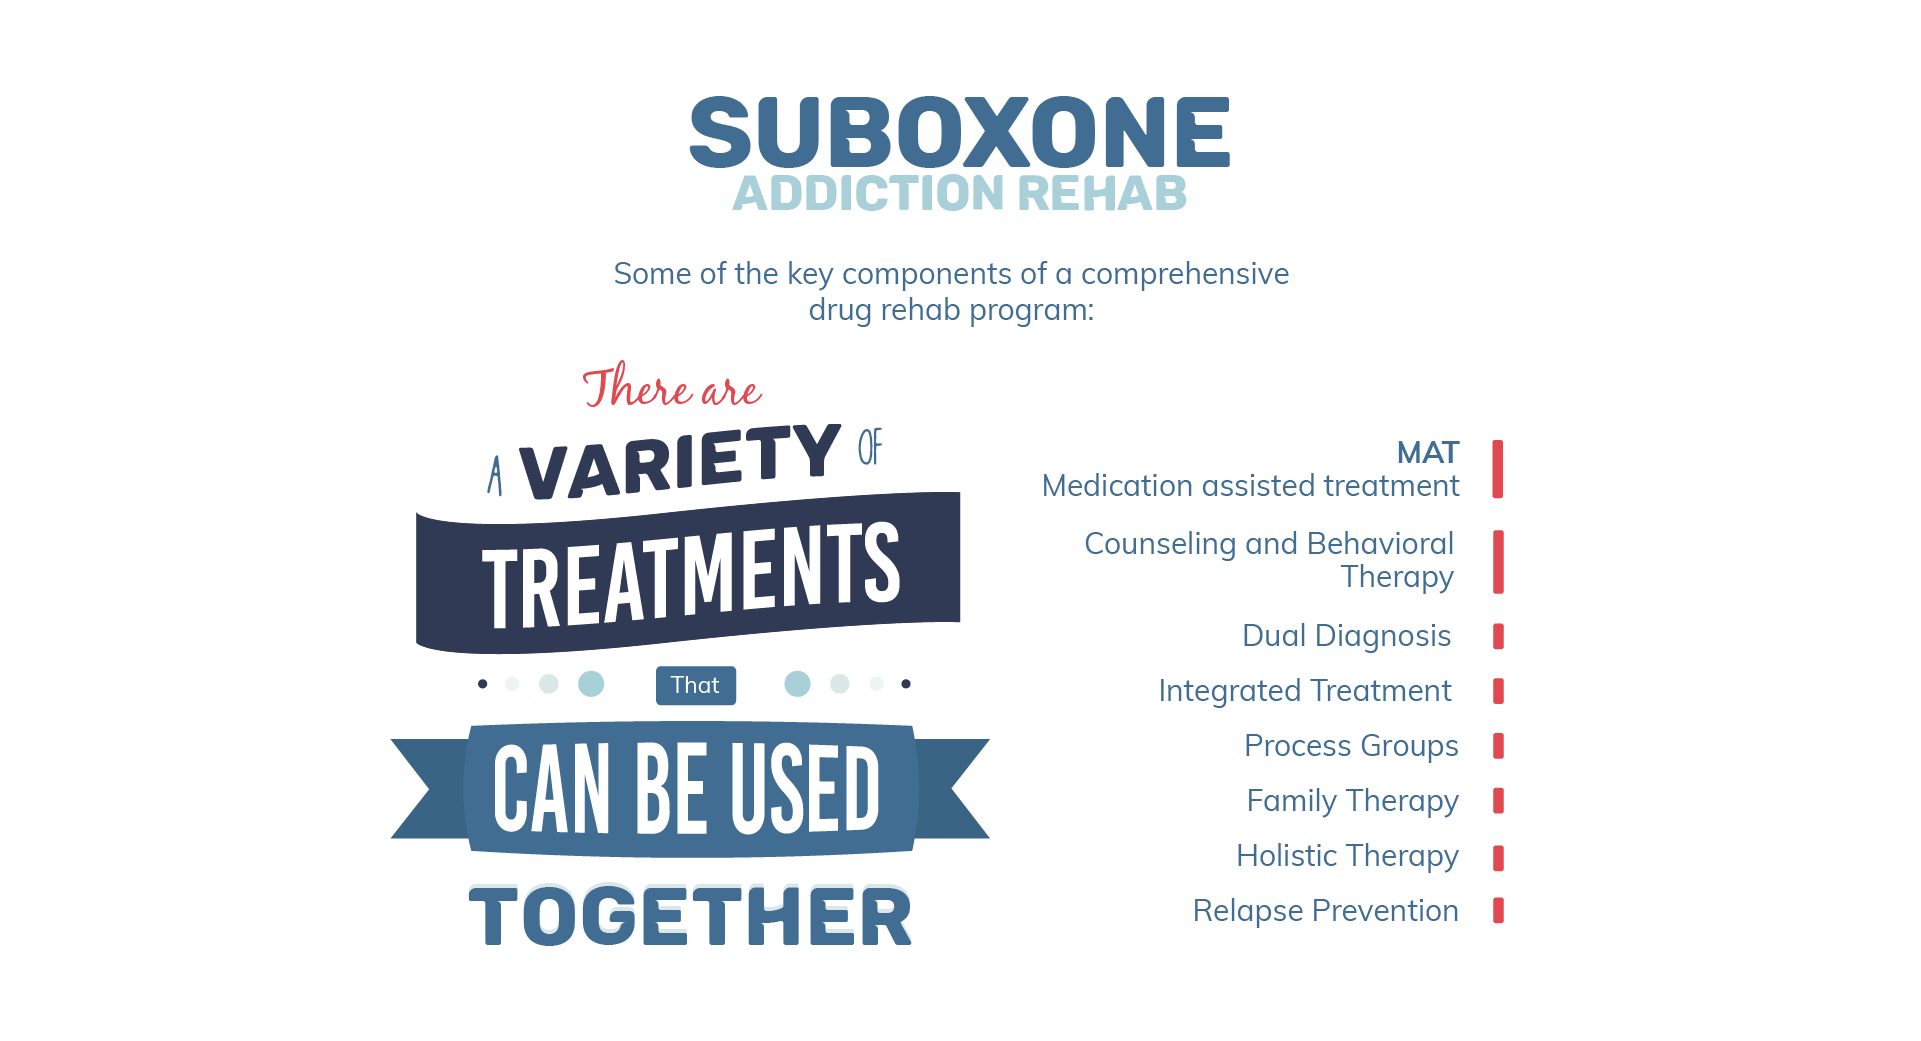 Suboxone Addiction Rehab